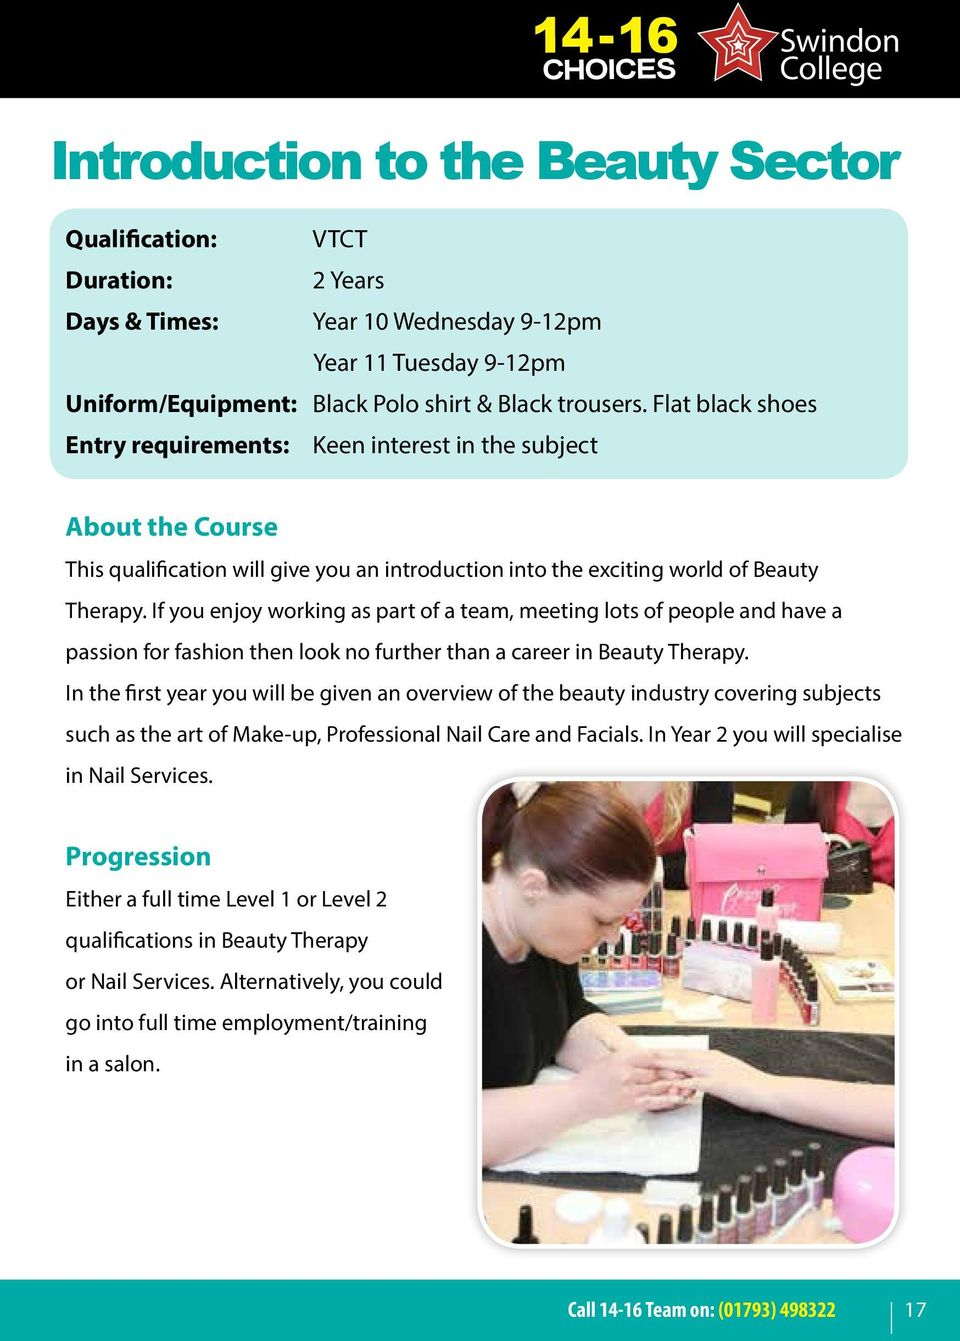 If you enjoy working as part of a team, meeting lots of people and have a passion for fashion then look no further than a career in Beauty Therapy.